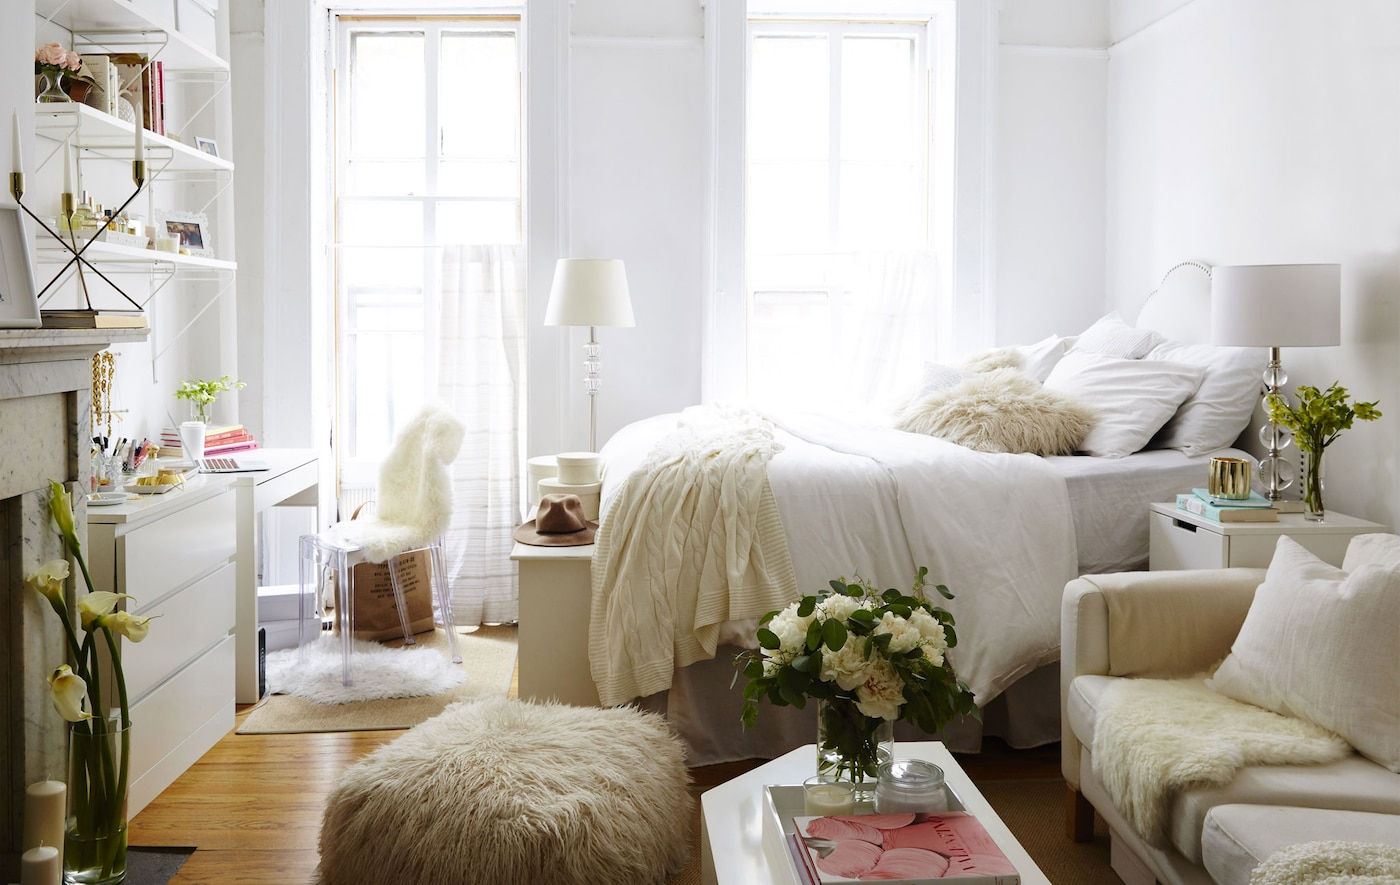 Dria's one-room apartment in New York